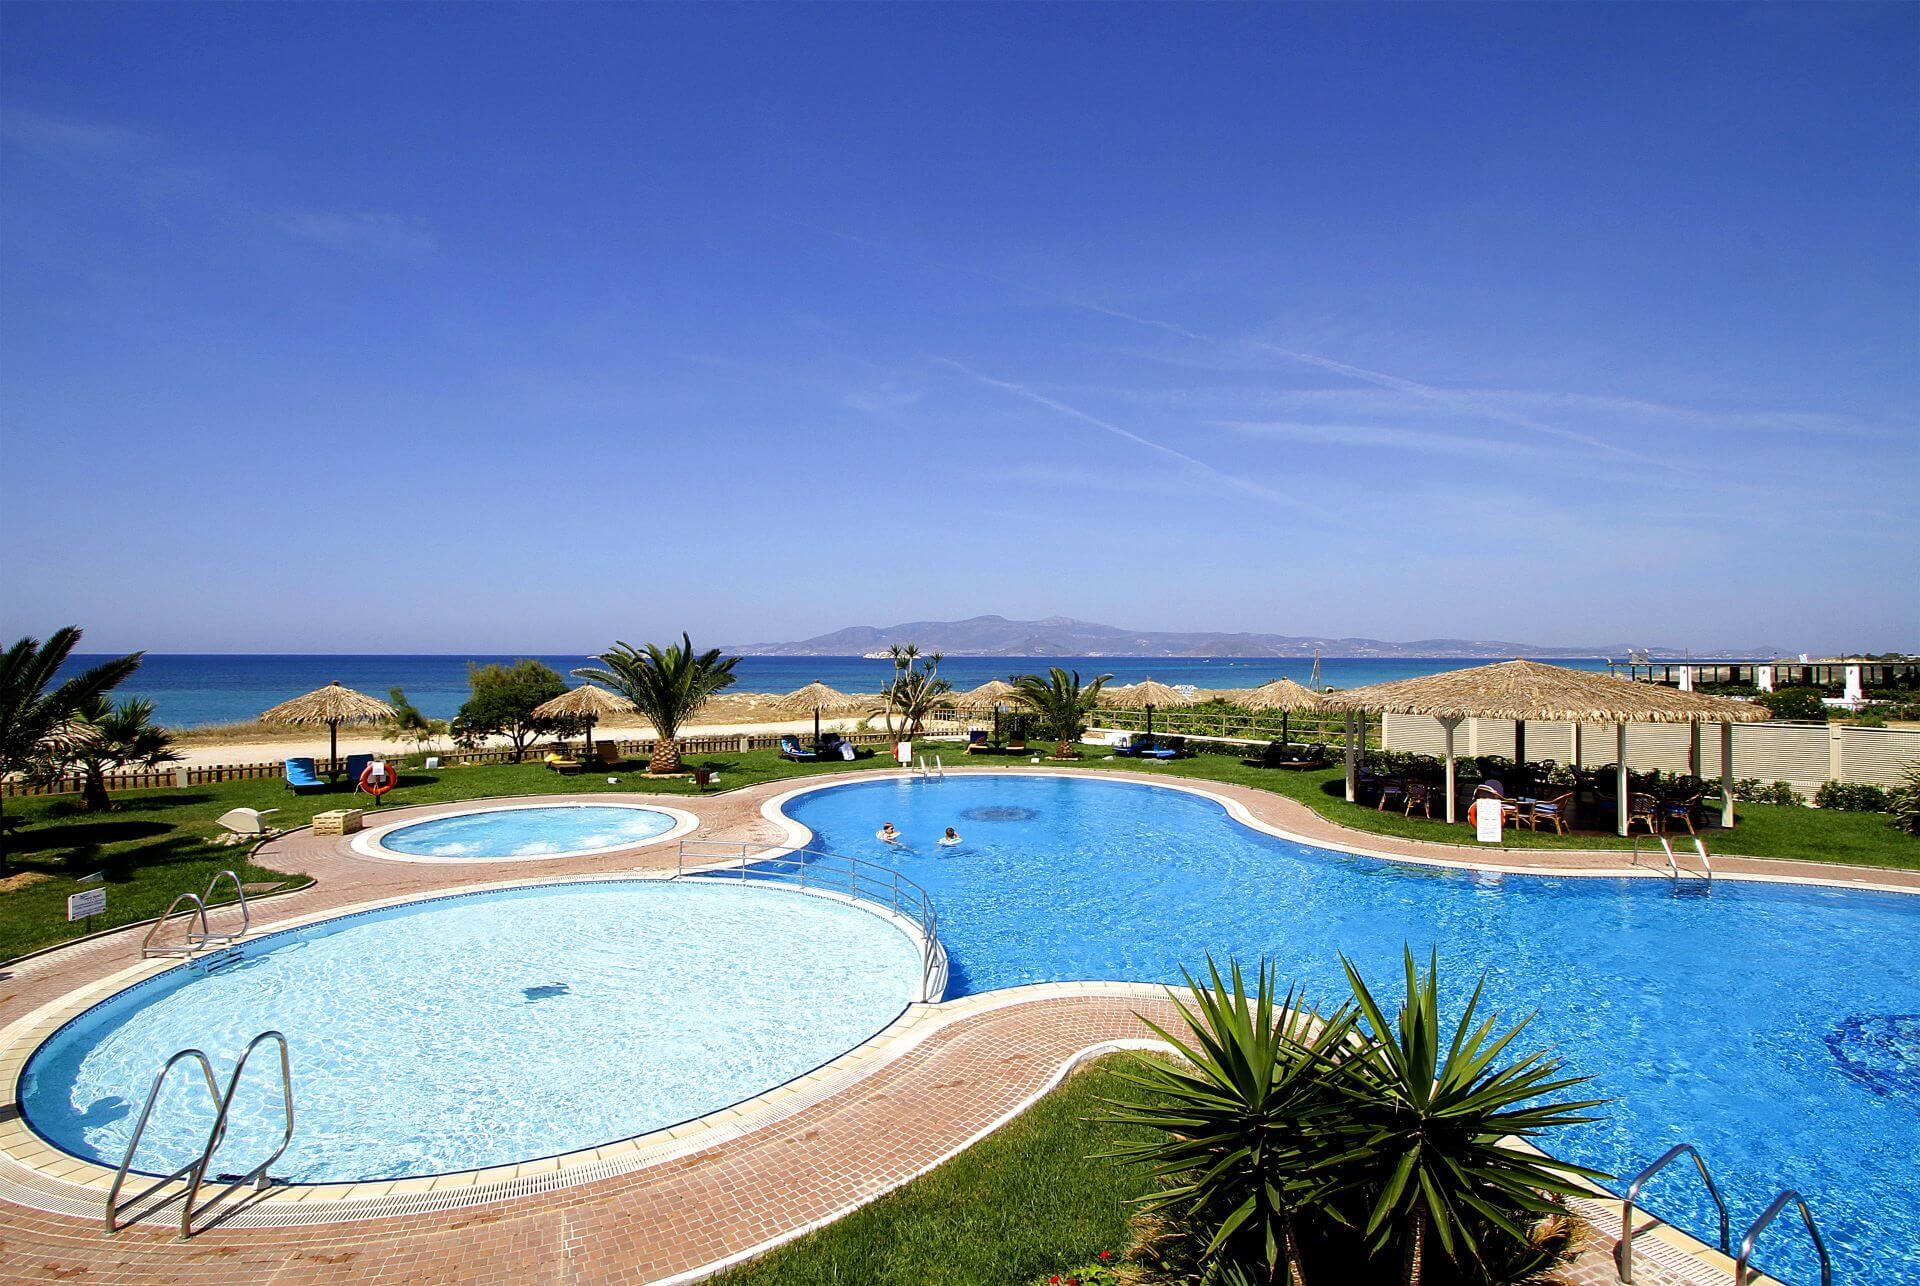 Accommodation and hotels in Naxos